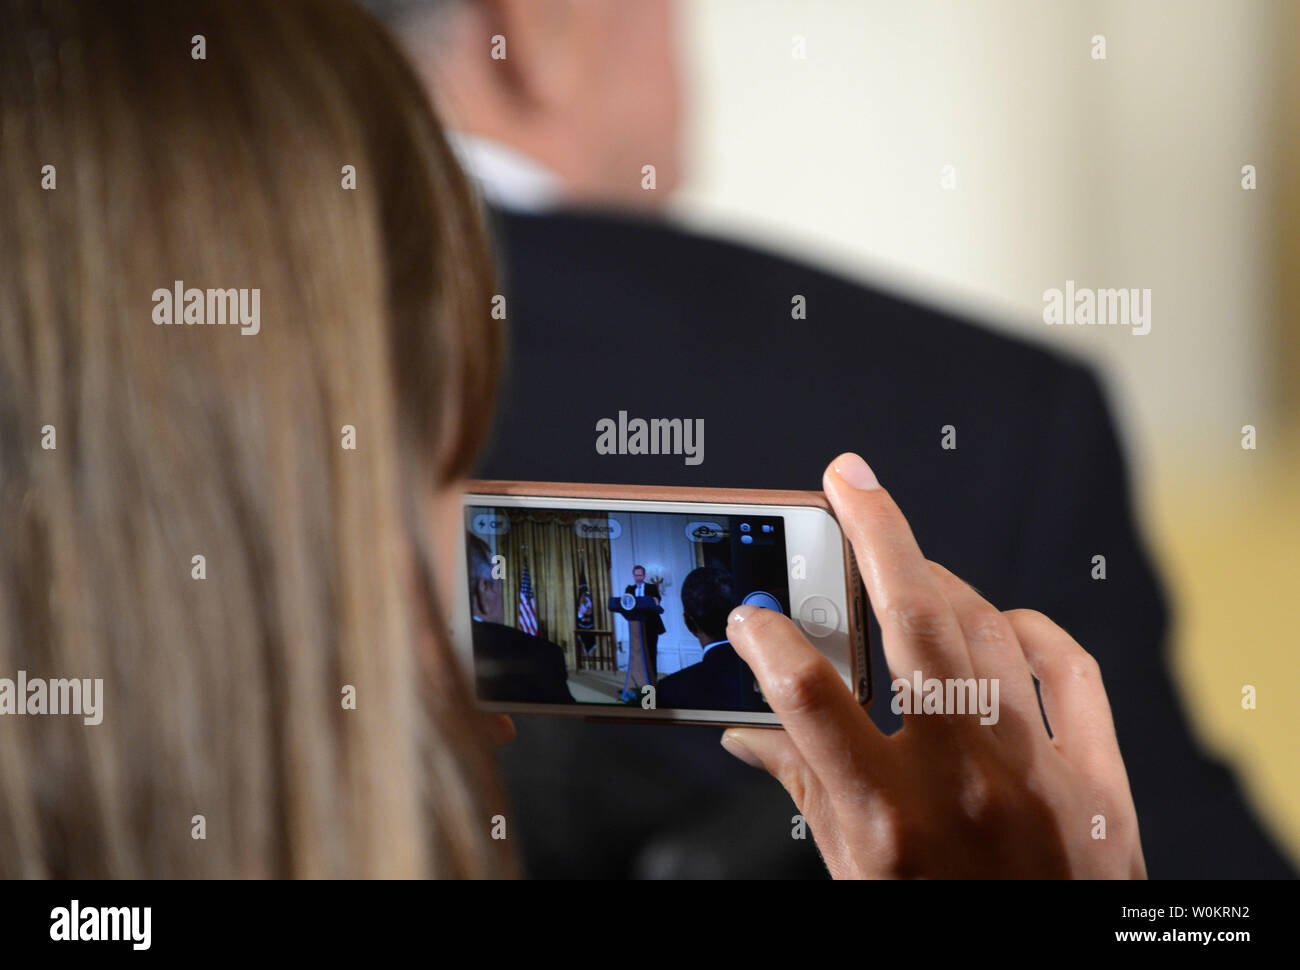 A member of the audience uses a smartphone to take a picture of former President George H.W. Bush (L) and President Barack Obama sitting in front of her during the presentation of the 5,000th 'Points of Light' Foundation award in the East Room of the White House in Washington, DC on July 15, 2013.  President Bush started the national movement to advance volunteerism and community service 20 years ago when he was the 41st president.  Kathy Hamilton and Floyd Hammer won the award.   UPI/Pat Benic - Stock Image